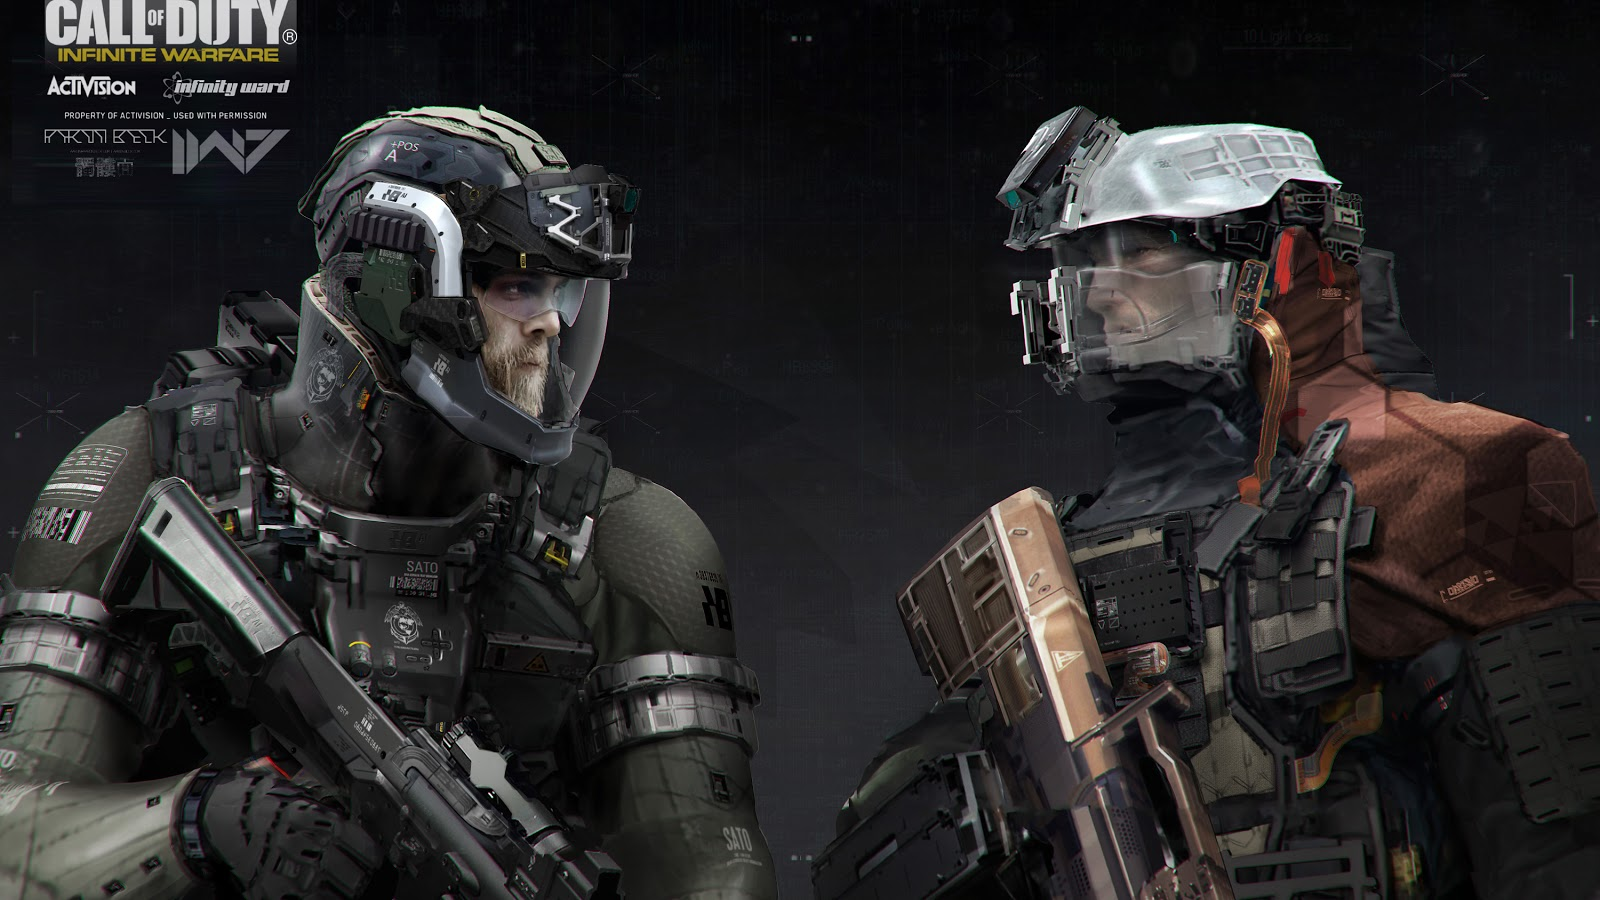 Call of Duty Infinite Warfare Concept Art by Aaron Beck